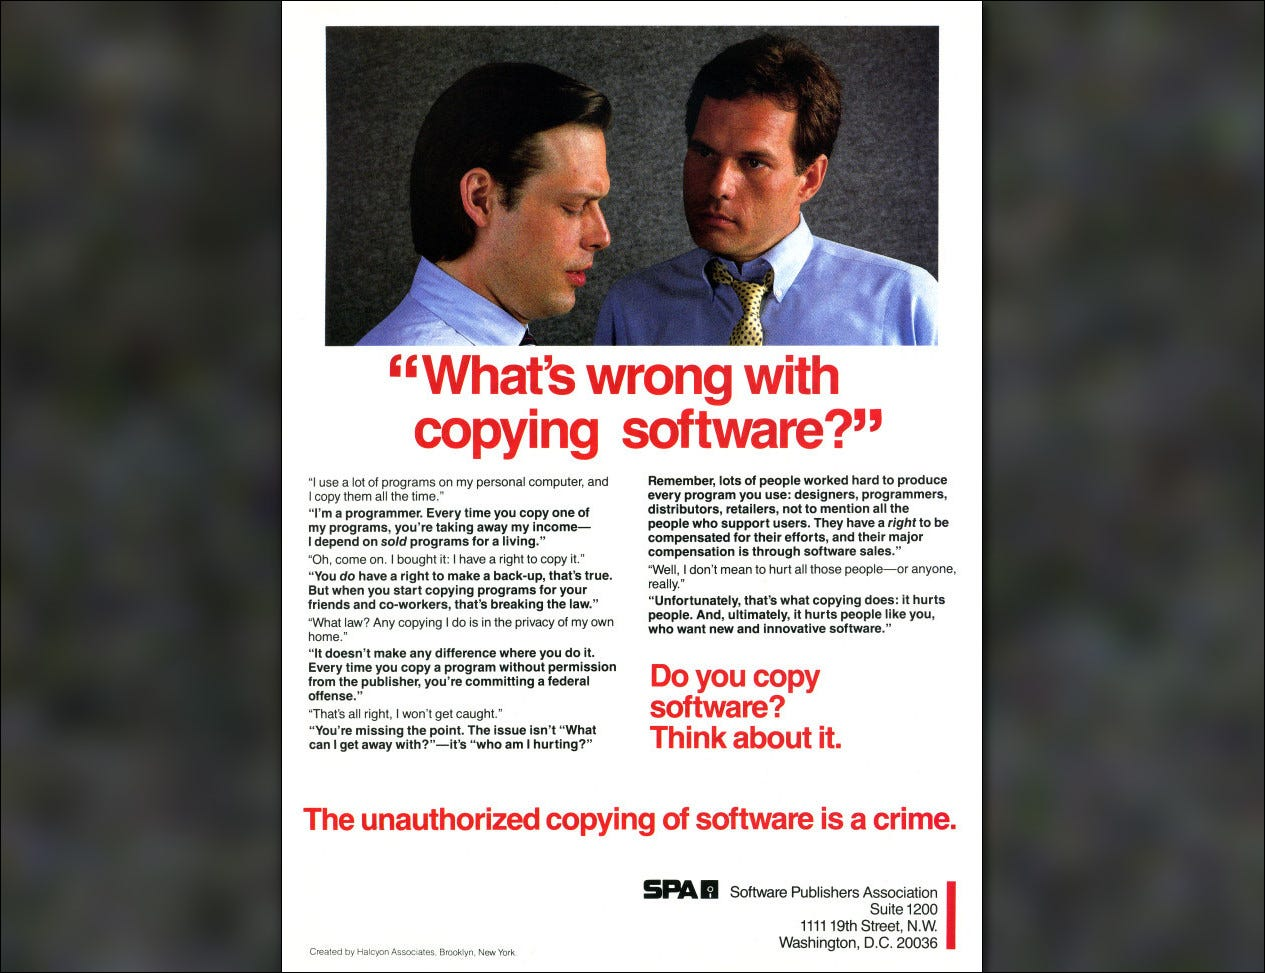 A 1984 anti-piracy ad from the Software Publishers Association.